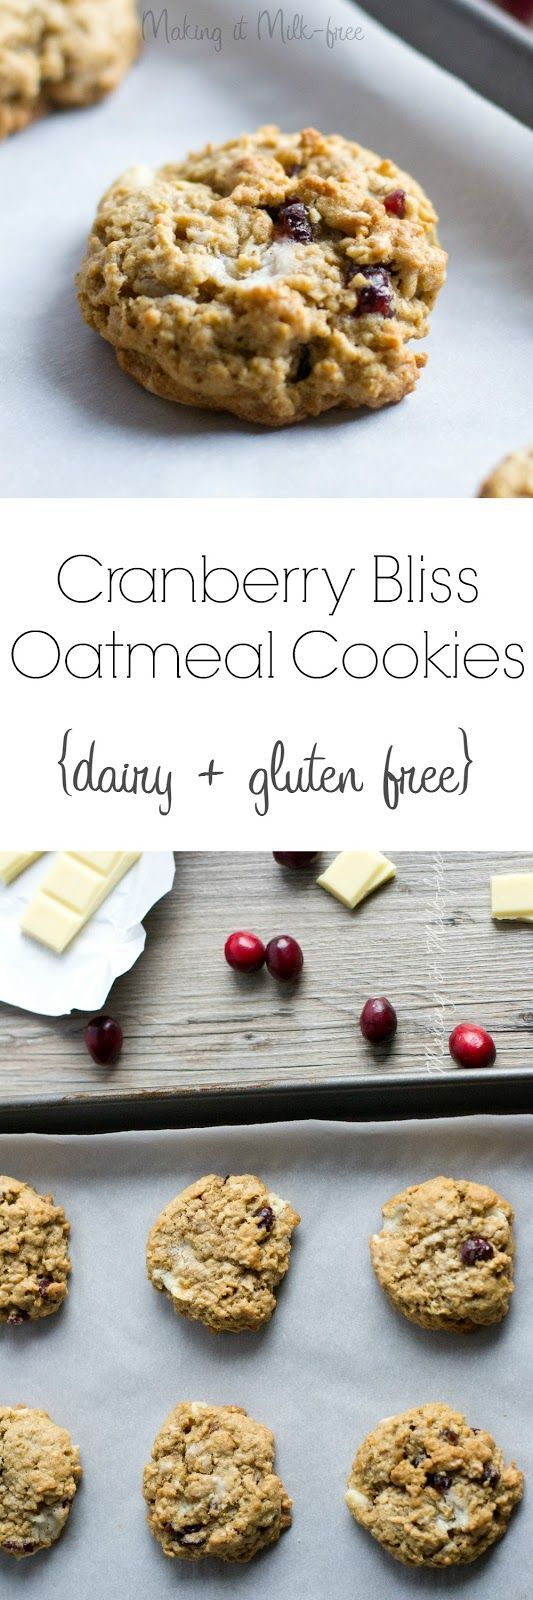 Cranberry Bliss Oatmeal Cookies {dairy + gluten free